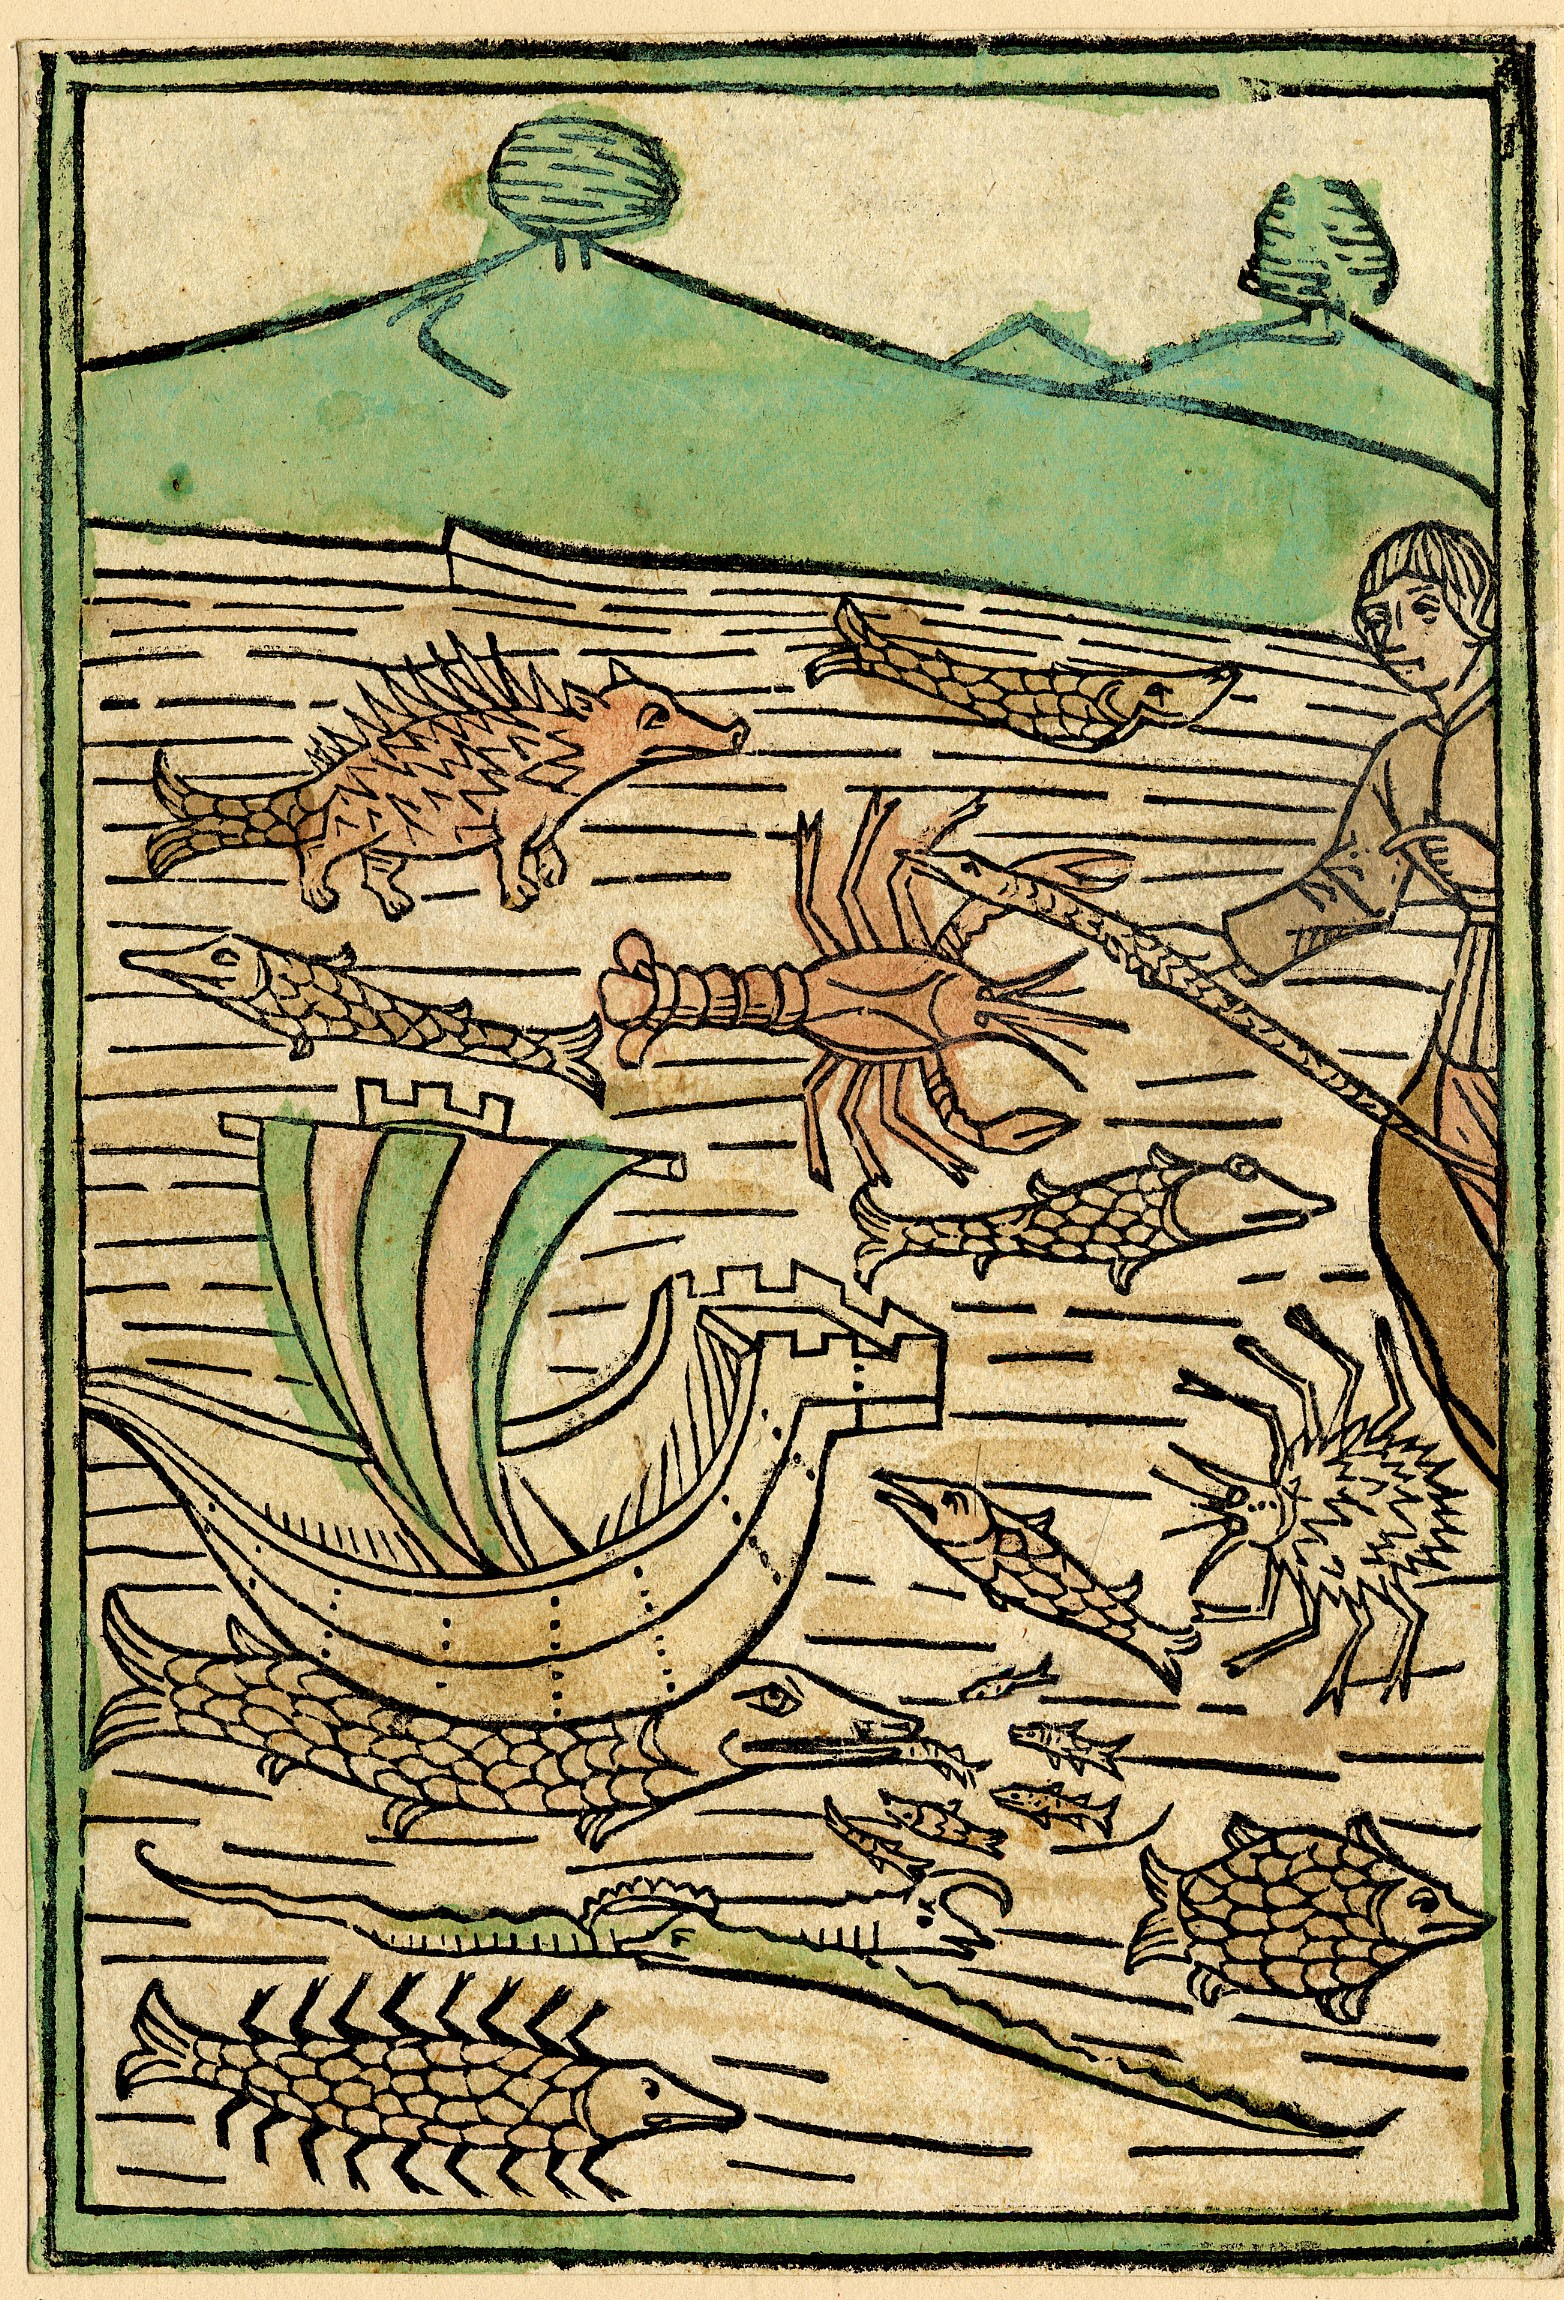 A print showing a fisherman on the left standing next to a body of water filled with different types of fish and fantastical looking sea creatures. There is also a boat on the water with a sail. In the background are hills and trees. The print is coloured with green and orange.